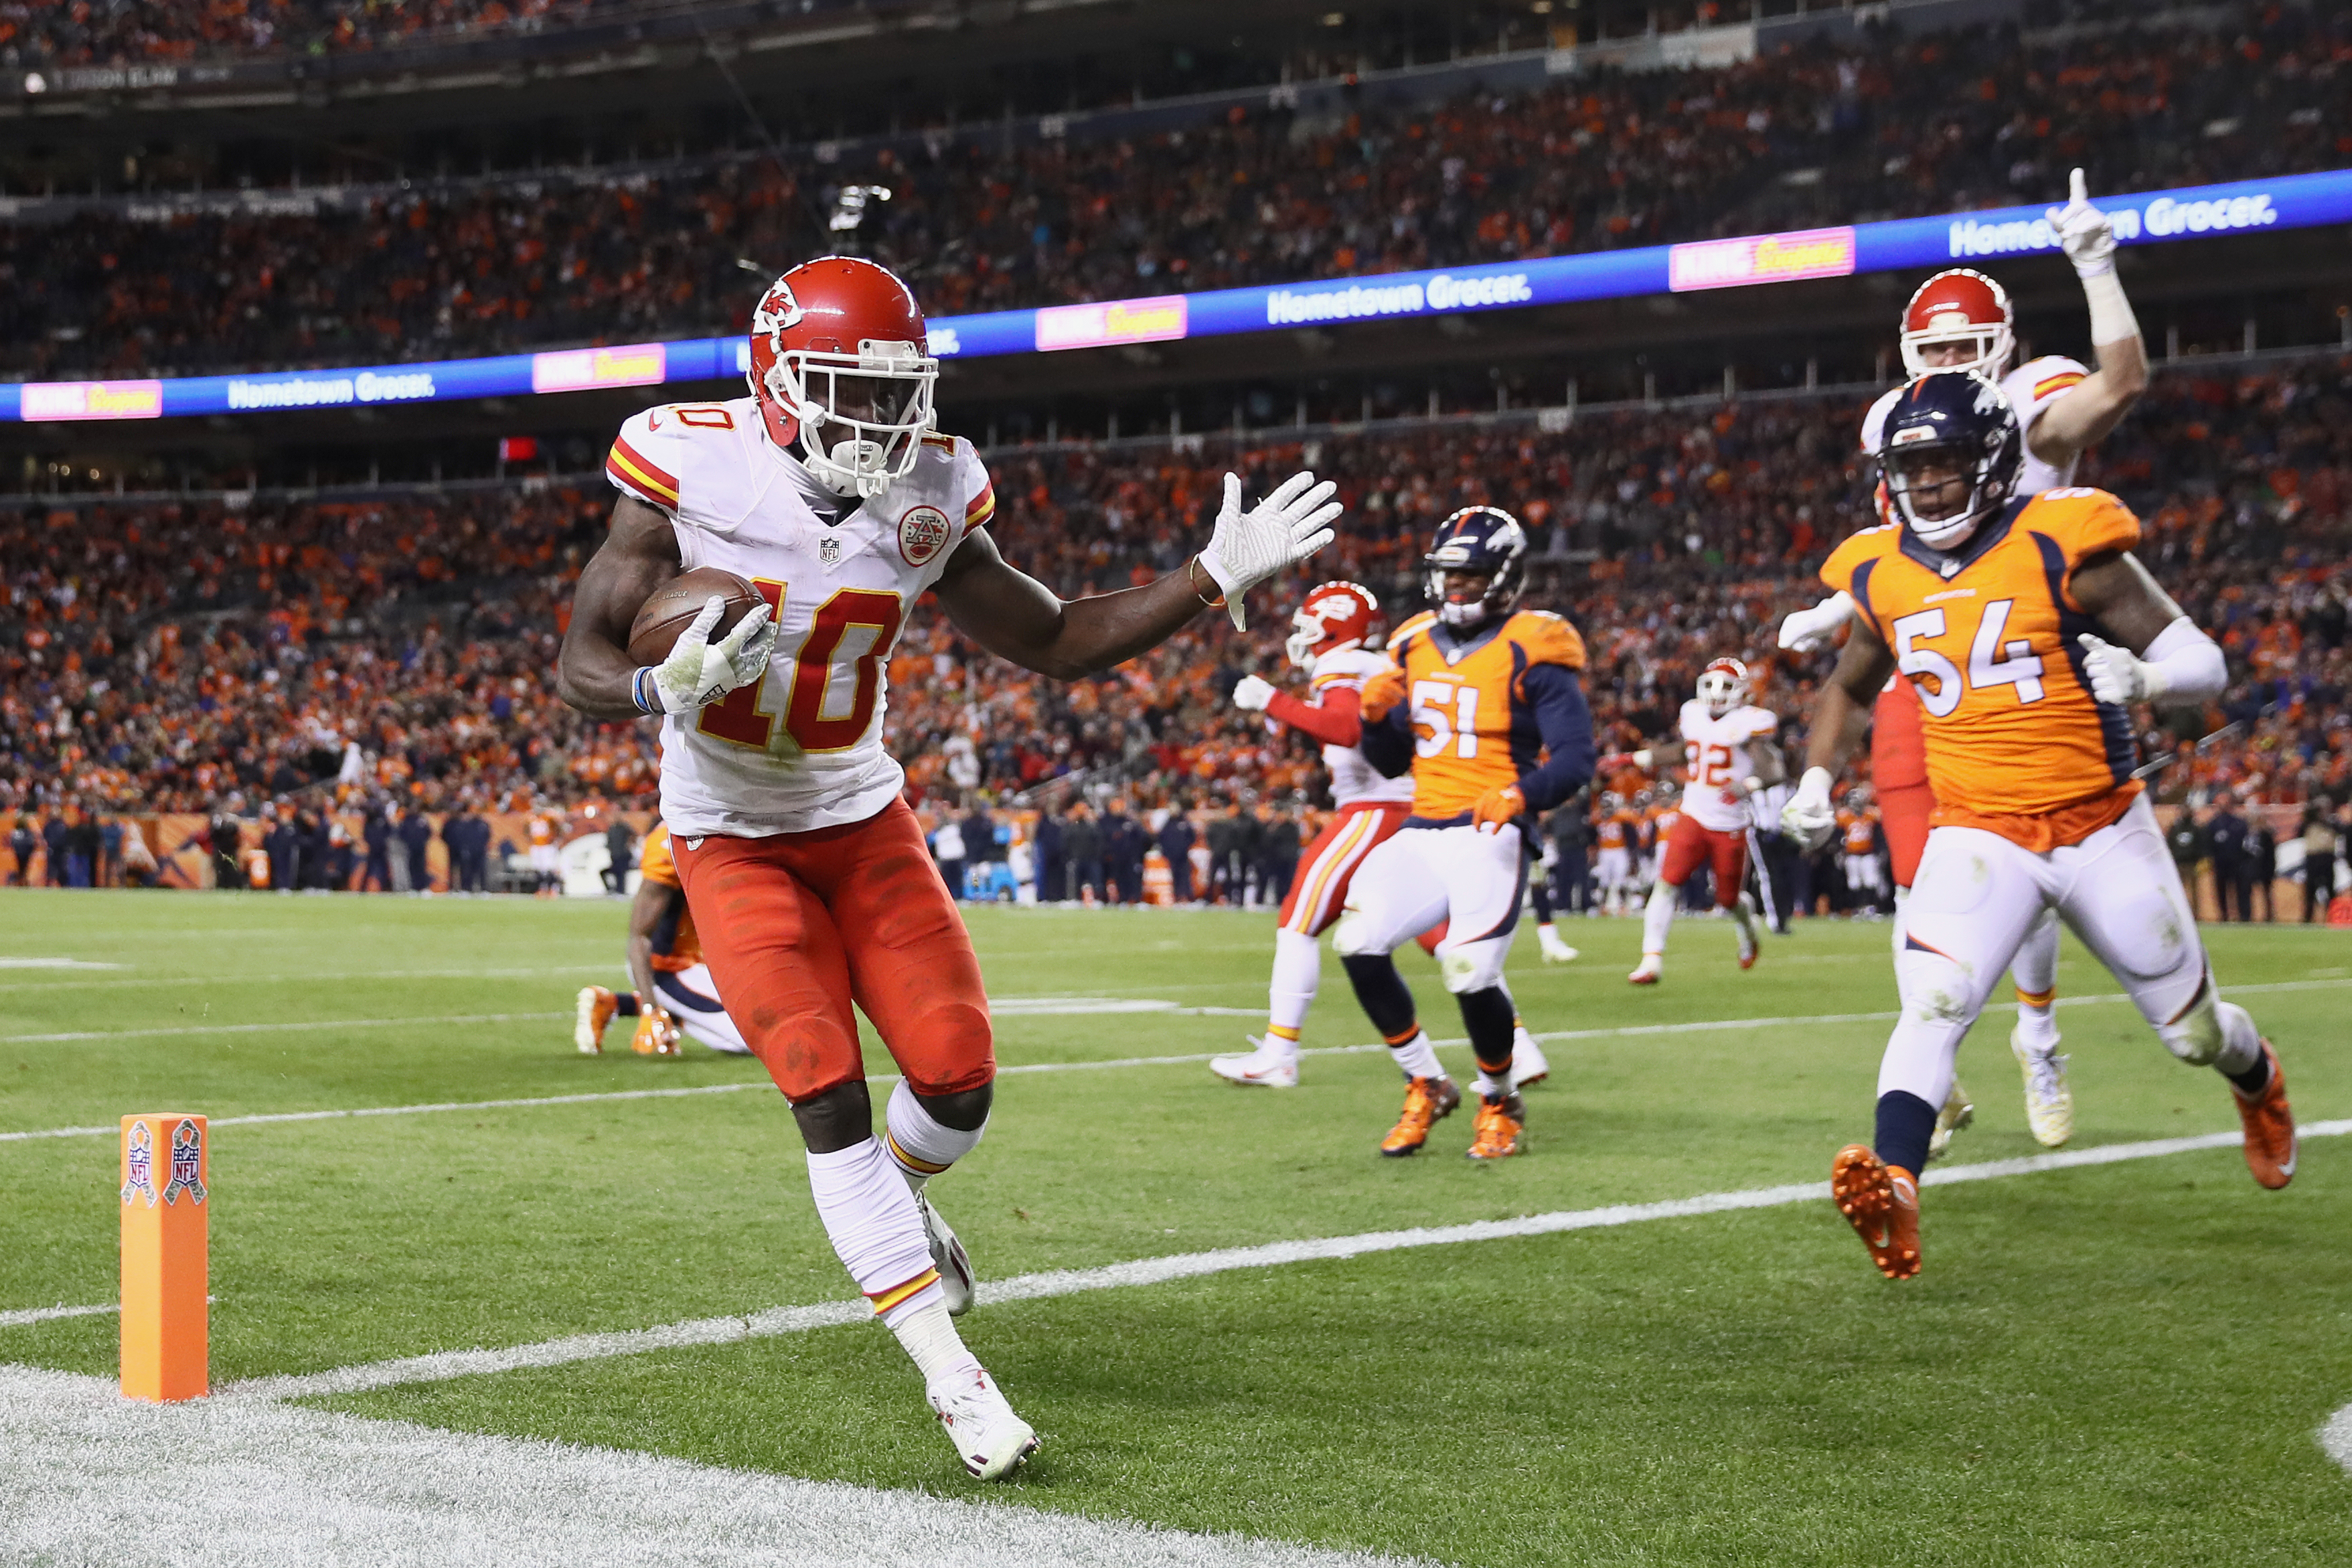 Wide receiver Tyreek Hill #10 of the Kansas City Chiefs runs for a touchdown in the third quarter of the game against the Denver Broncos at Sports Authority Field at Mile High on November 27, 2016 in Denver, Colorado. (Photo by Ezra Shaw/Getty Images)